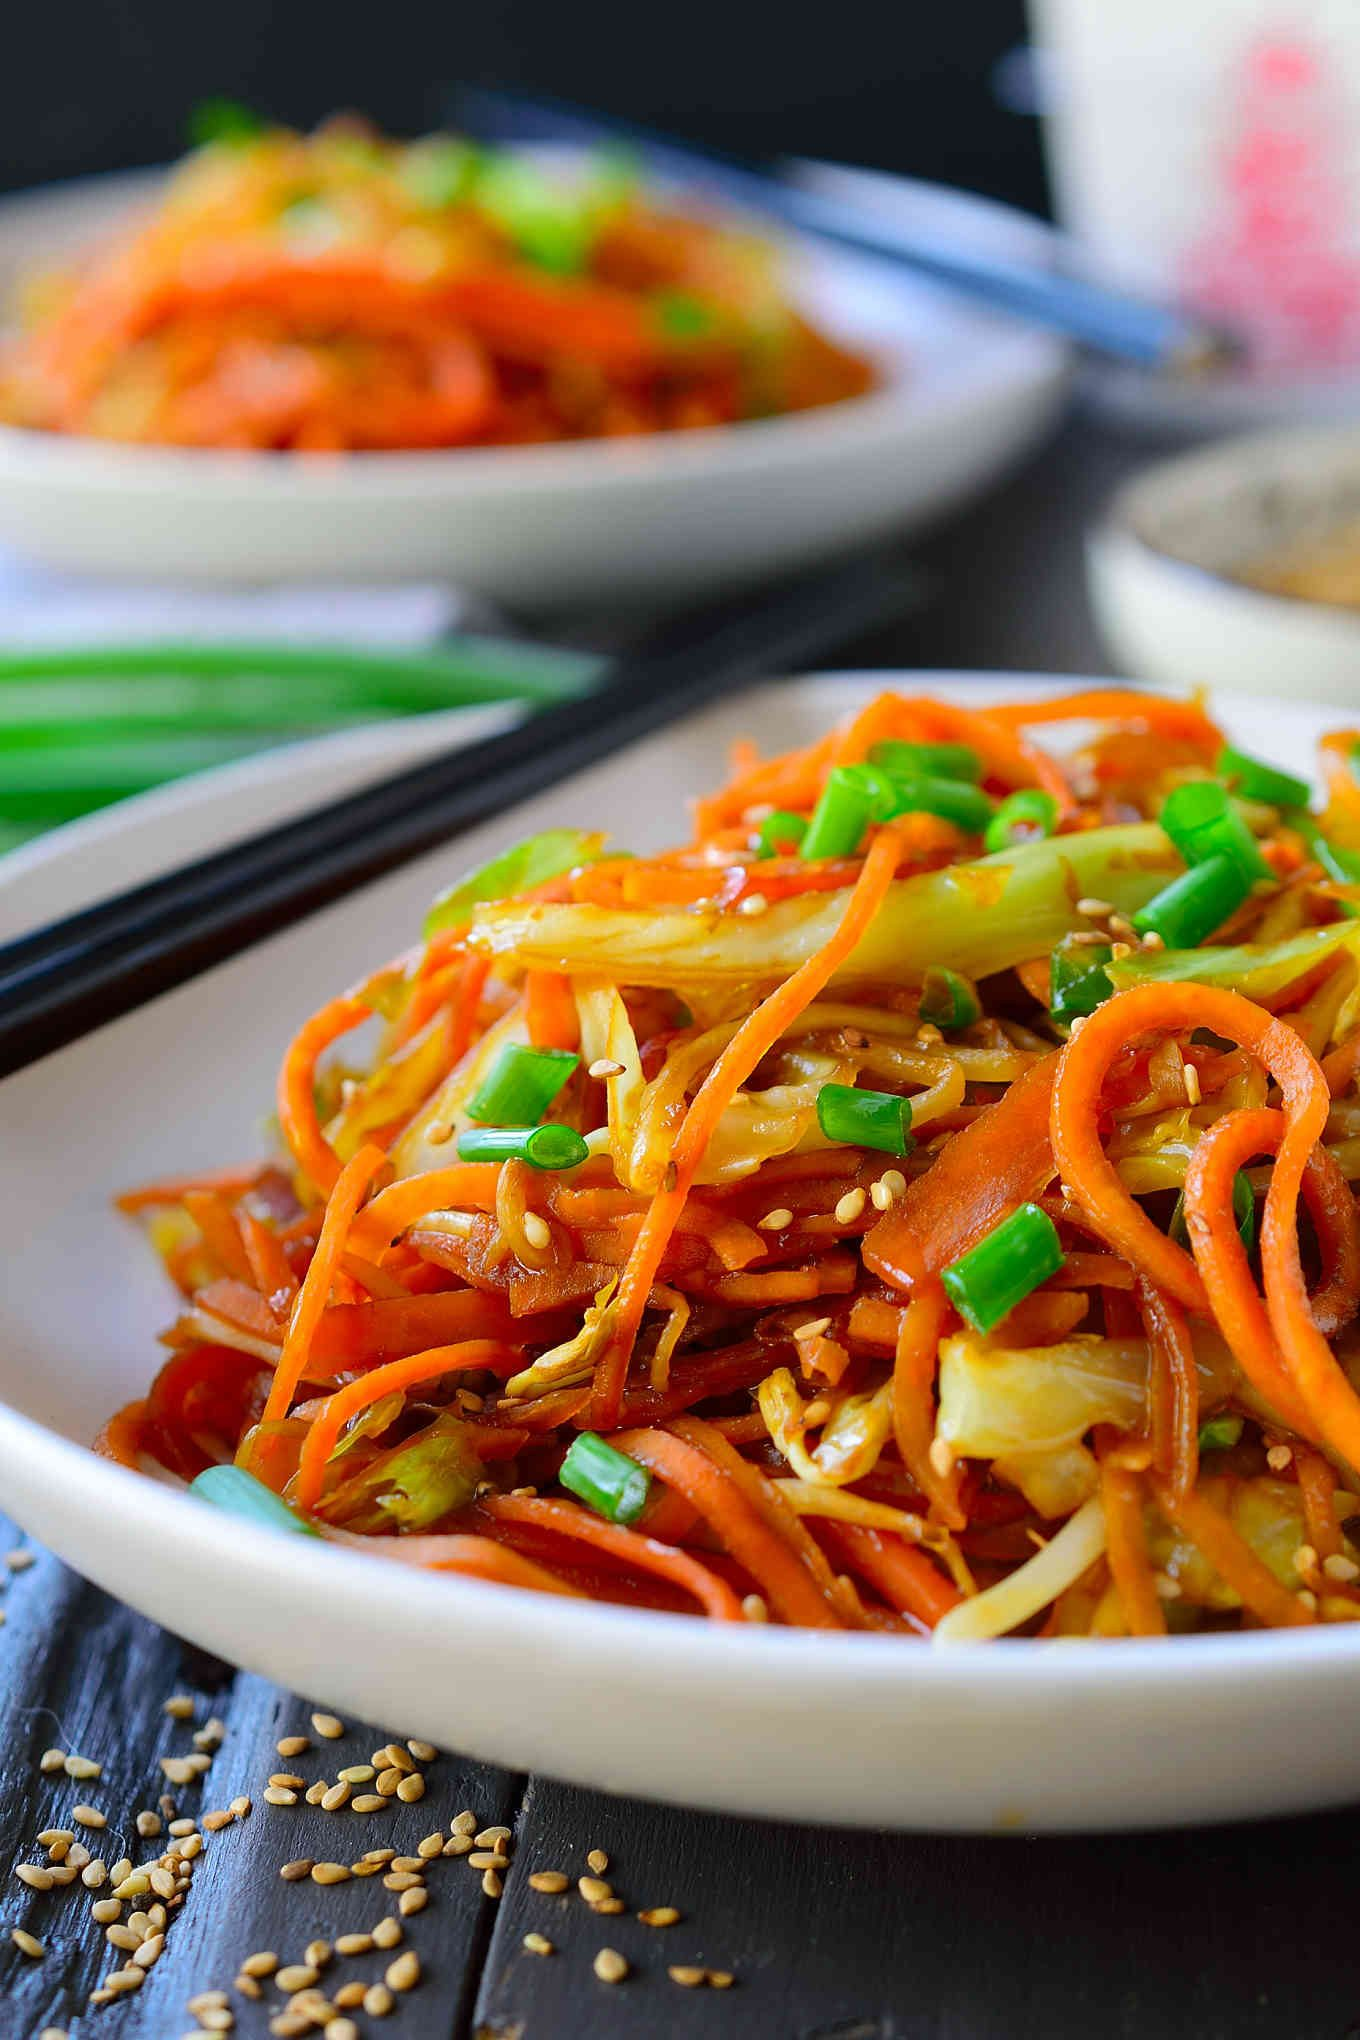 Chow mein sweet potato noodles is a healthy, super quick 15-minute meal that's great for a weeknight dinner. Spiralized sweet potatoes are lightly stir-fried until crisp-tender then tossed with stir-fried cabbage and carrots and a soy sauce-sesame dressing. These noodles are so addictive that you'll want to have them every night!